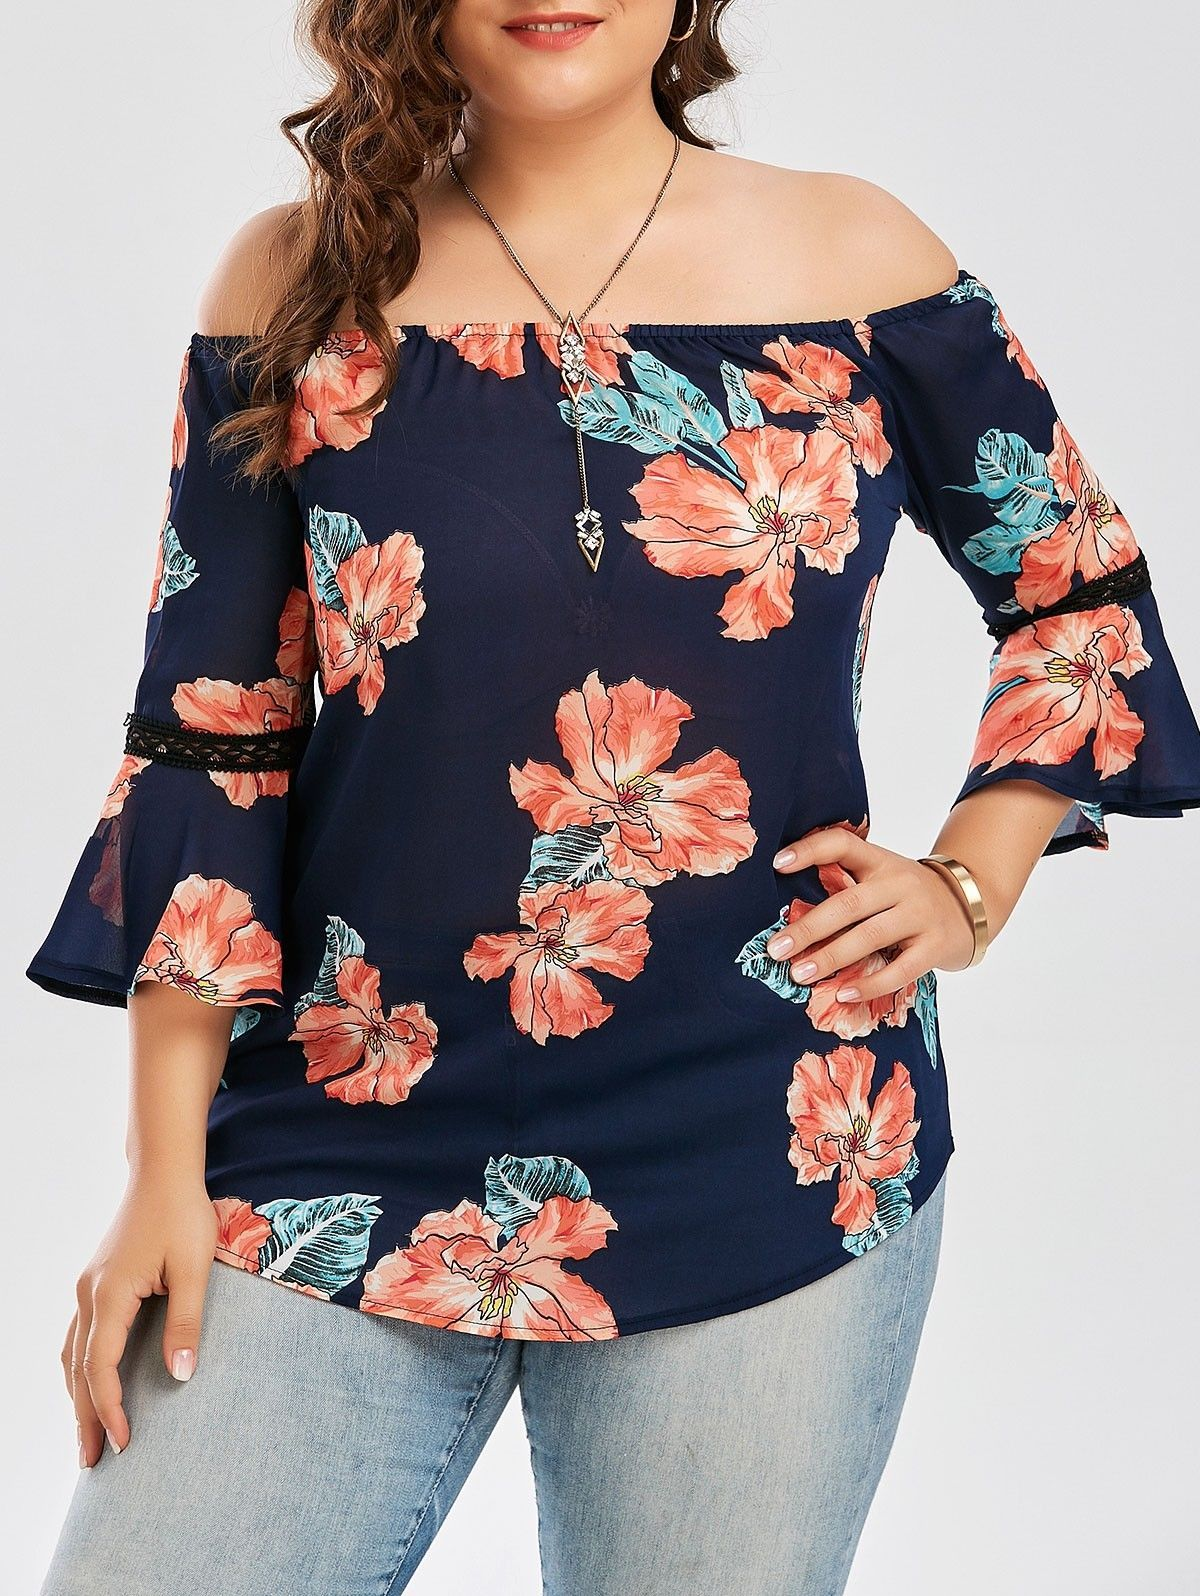 8a887934ade Lady Off Shoulder Plus Size Casual Blouse T-Shirts Floral Print Chiffon Tops